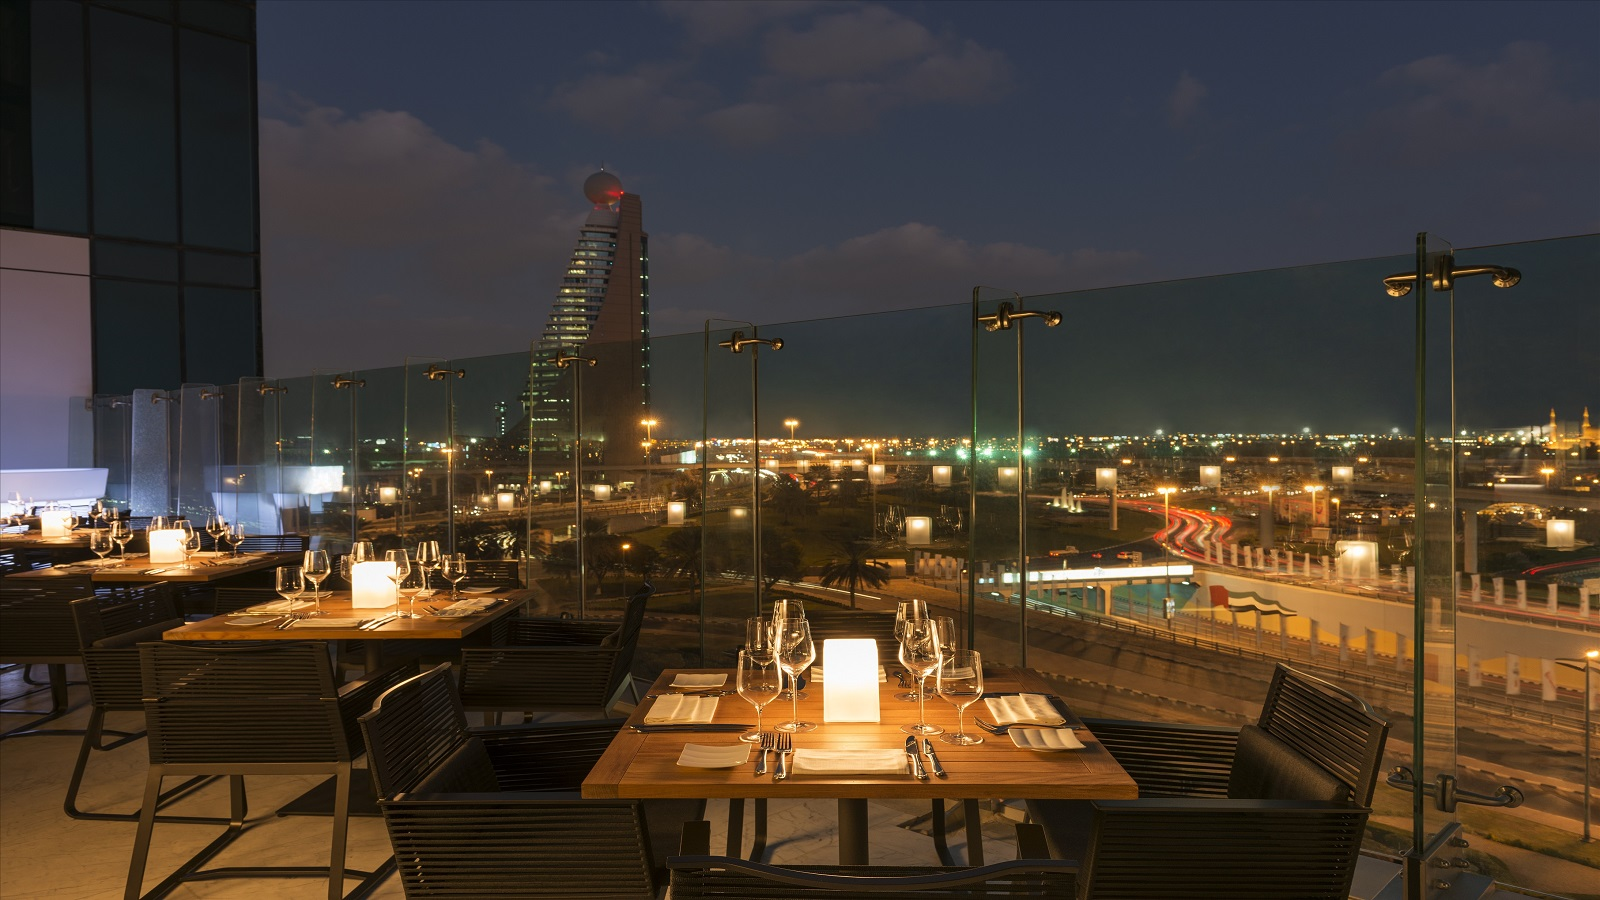 Feast Restaurant at Sheraton Grand Hotel, Dubai